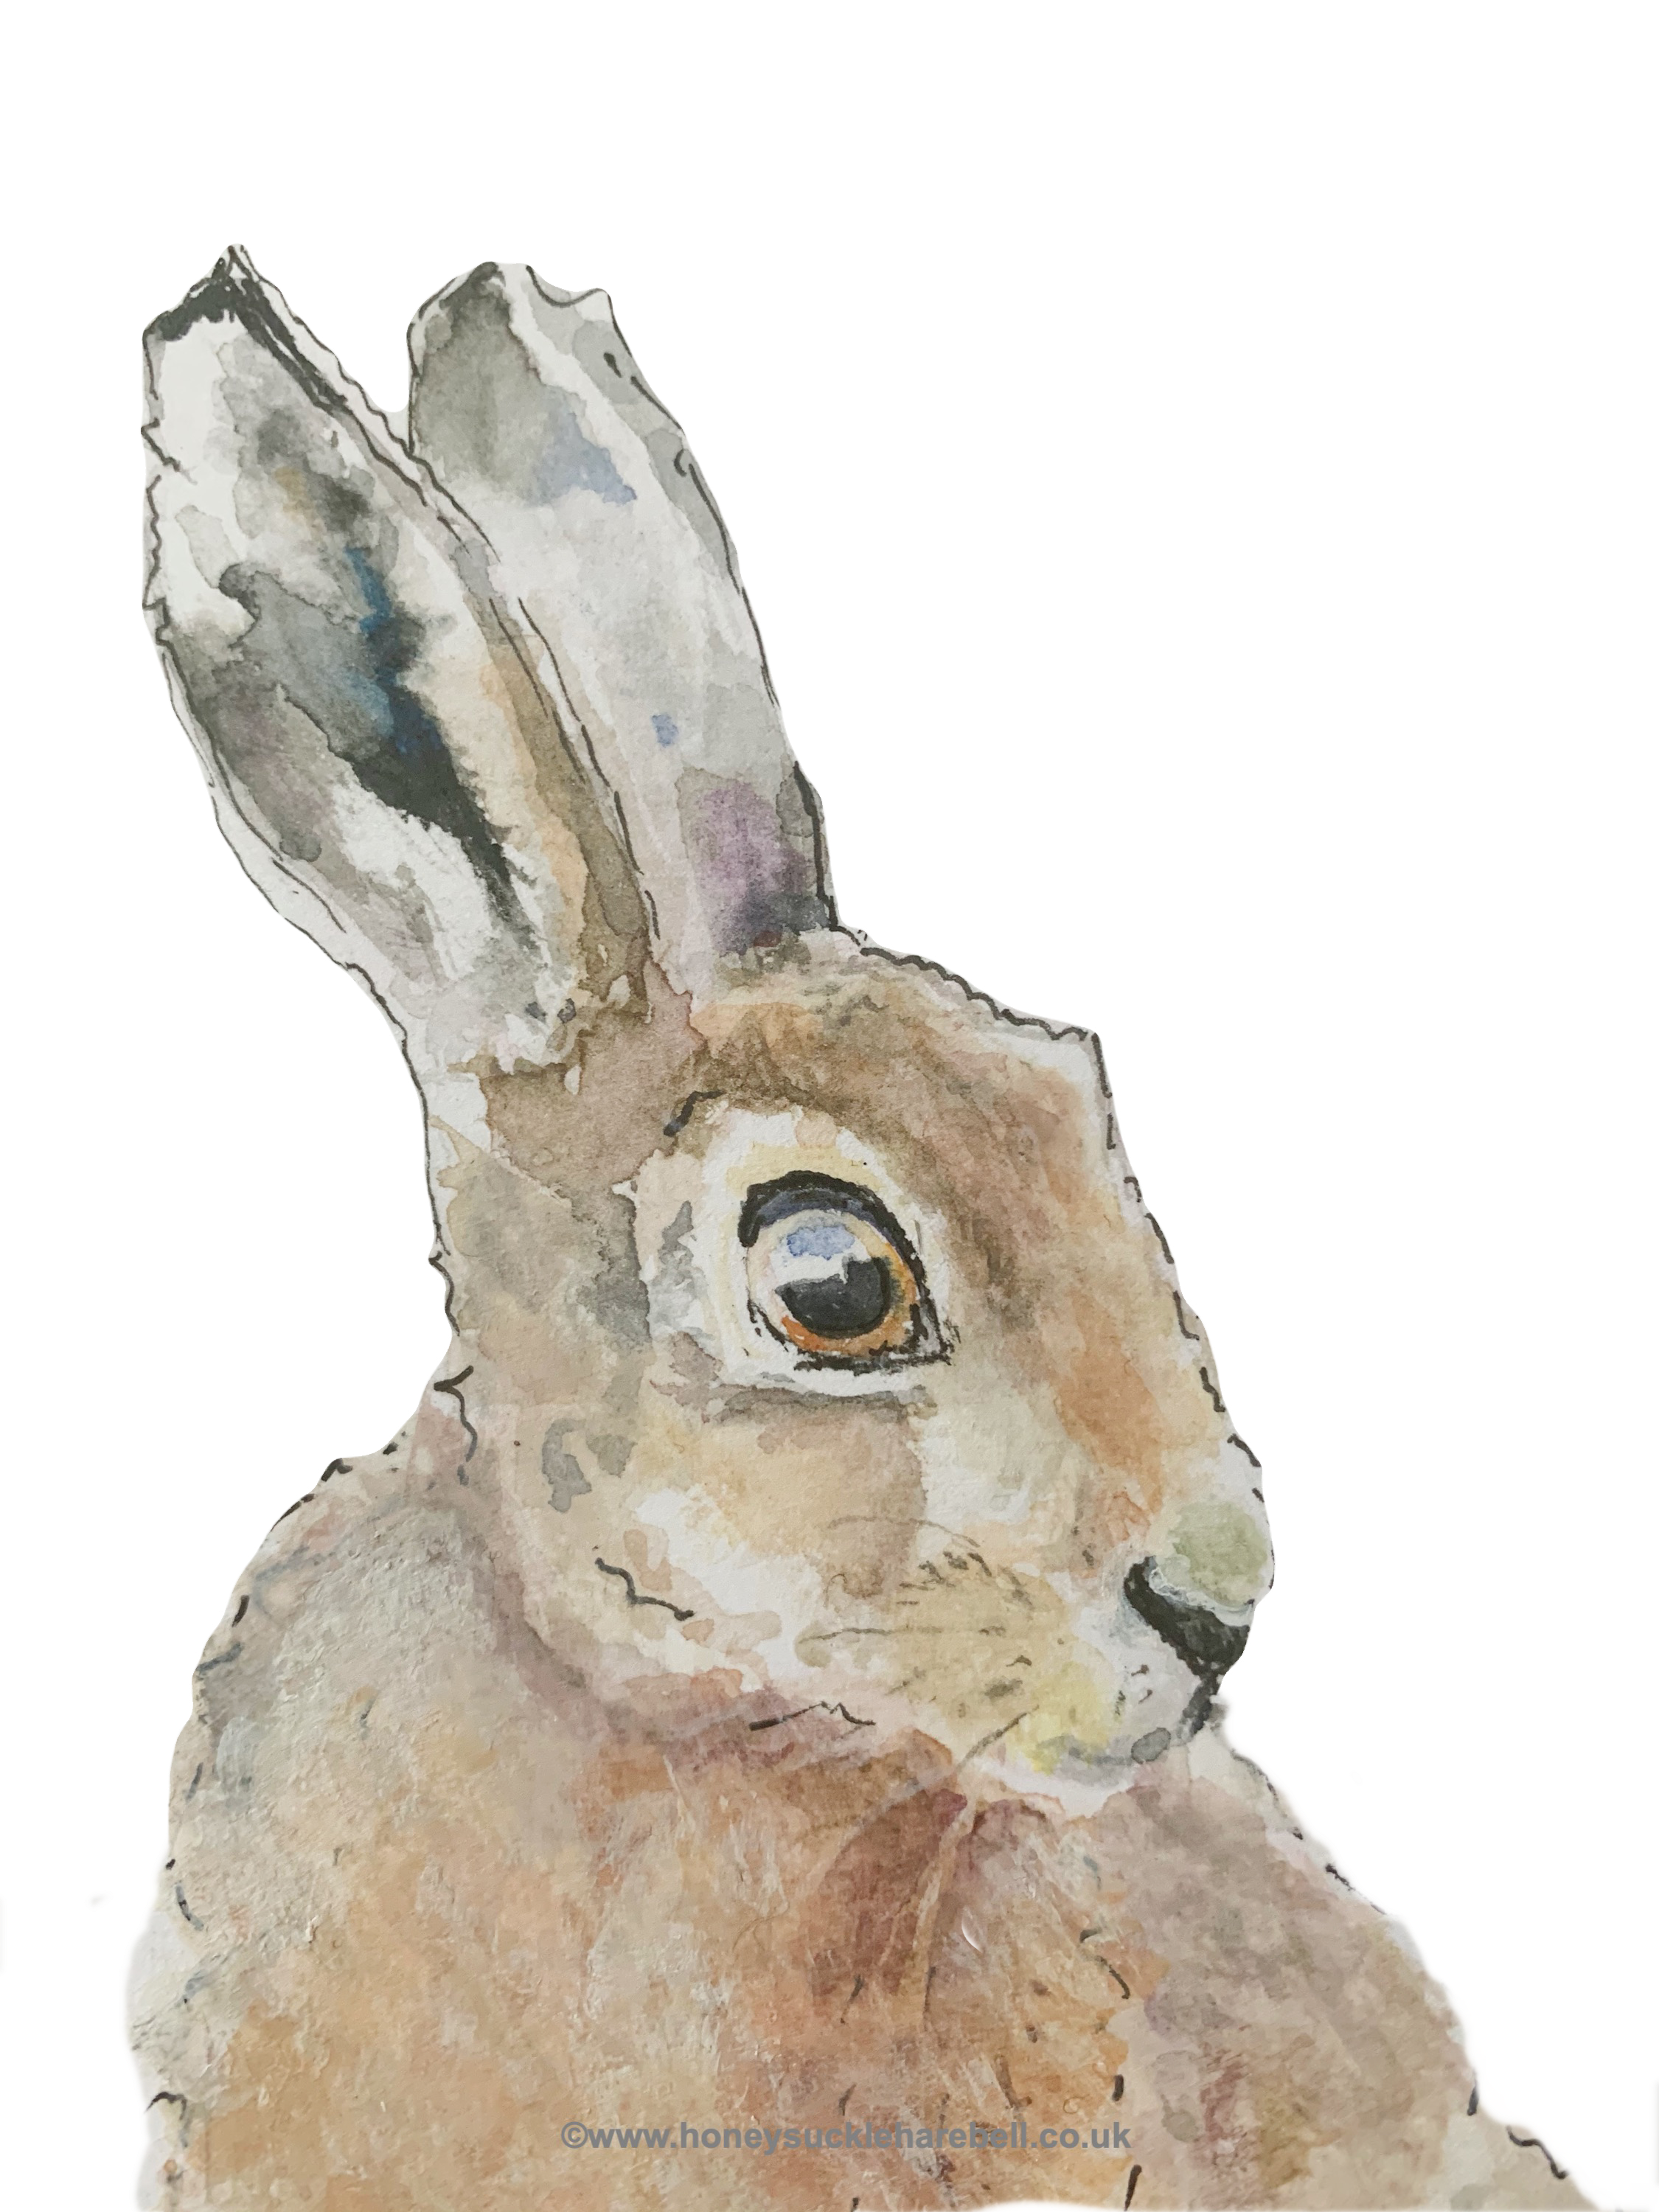 Hare's Looking at You